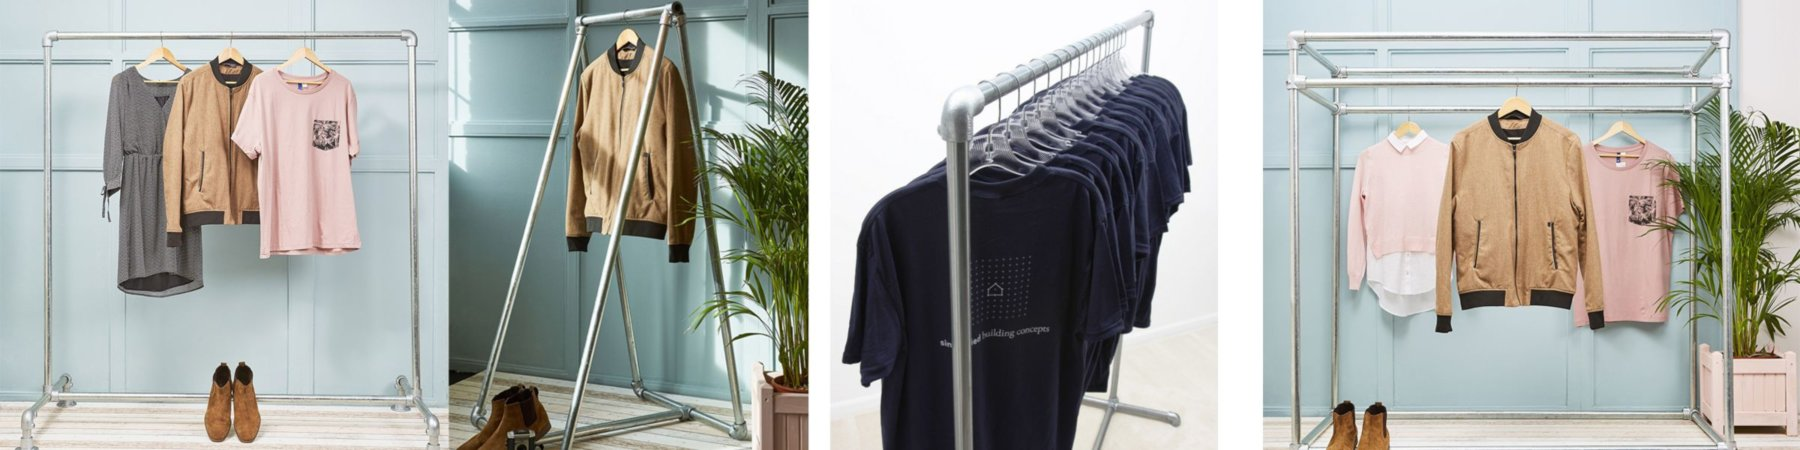 durable steel clothing rails